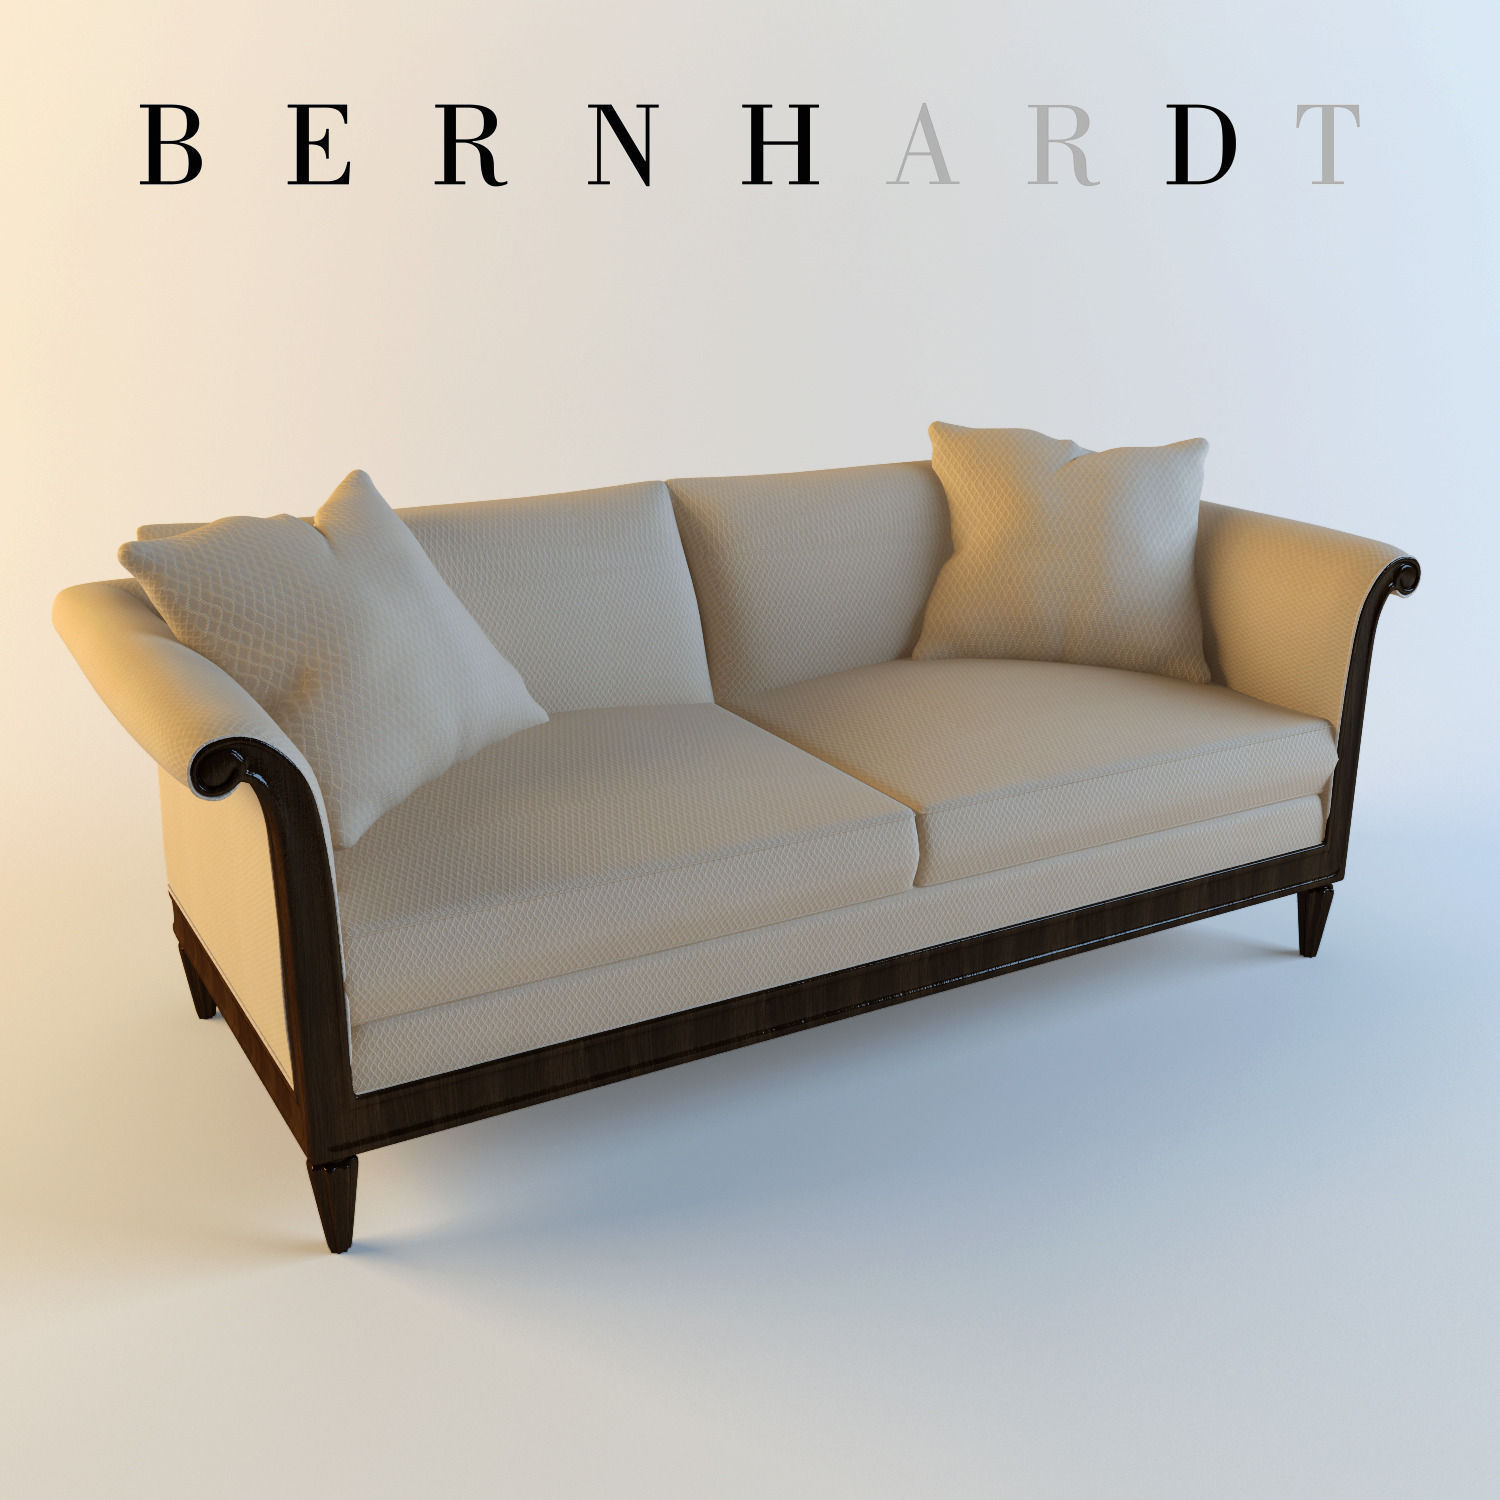 3D model Bernhardt Traditional Sofa | CGTrader